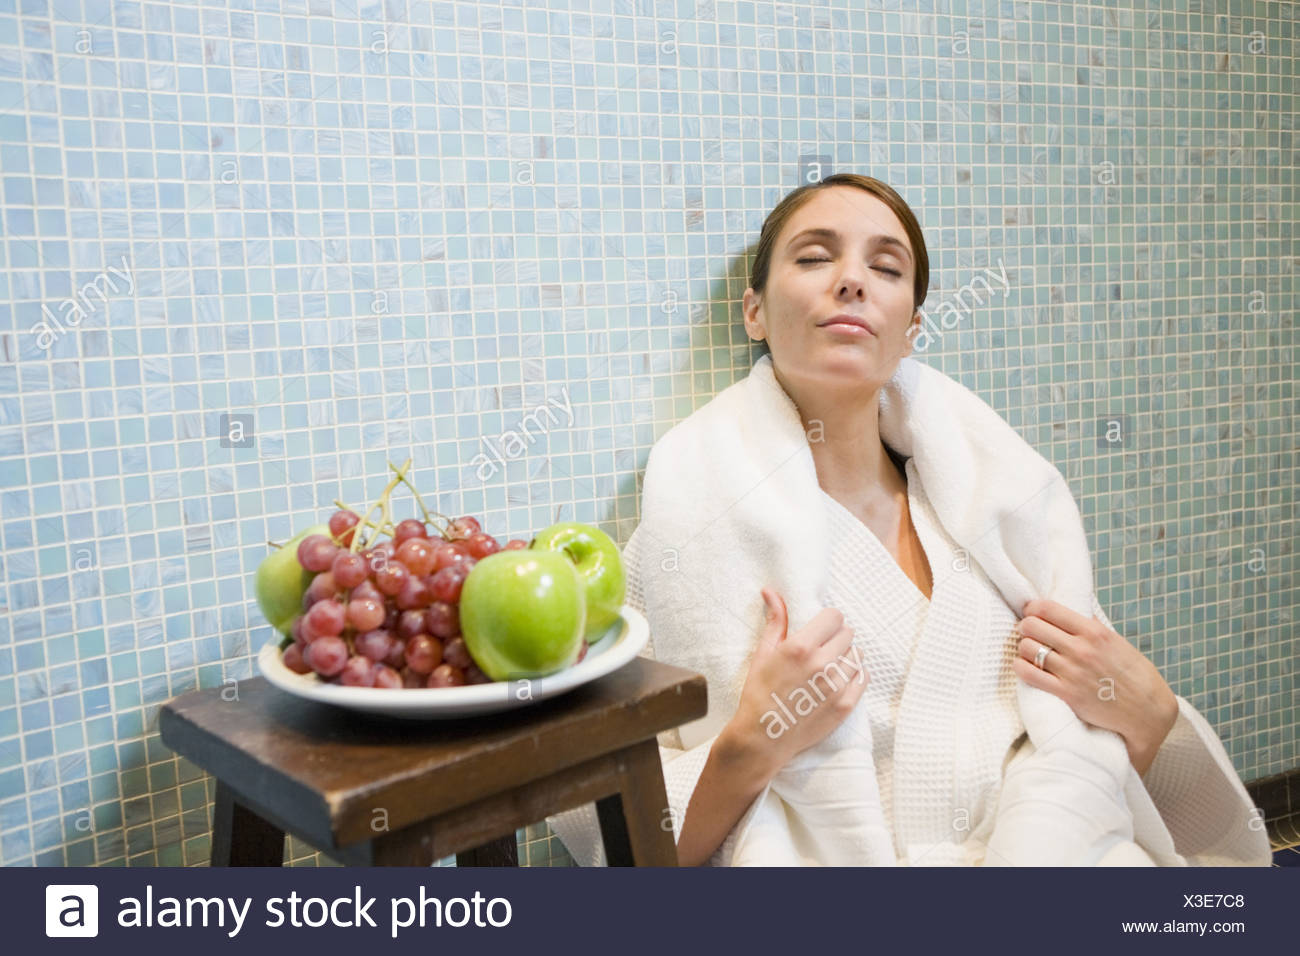 Woman in bathrobe leaning on tile wall - Stock Image